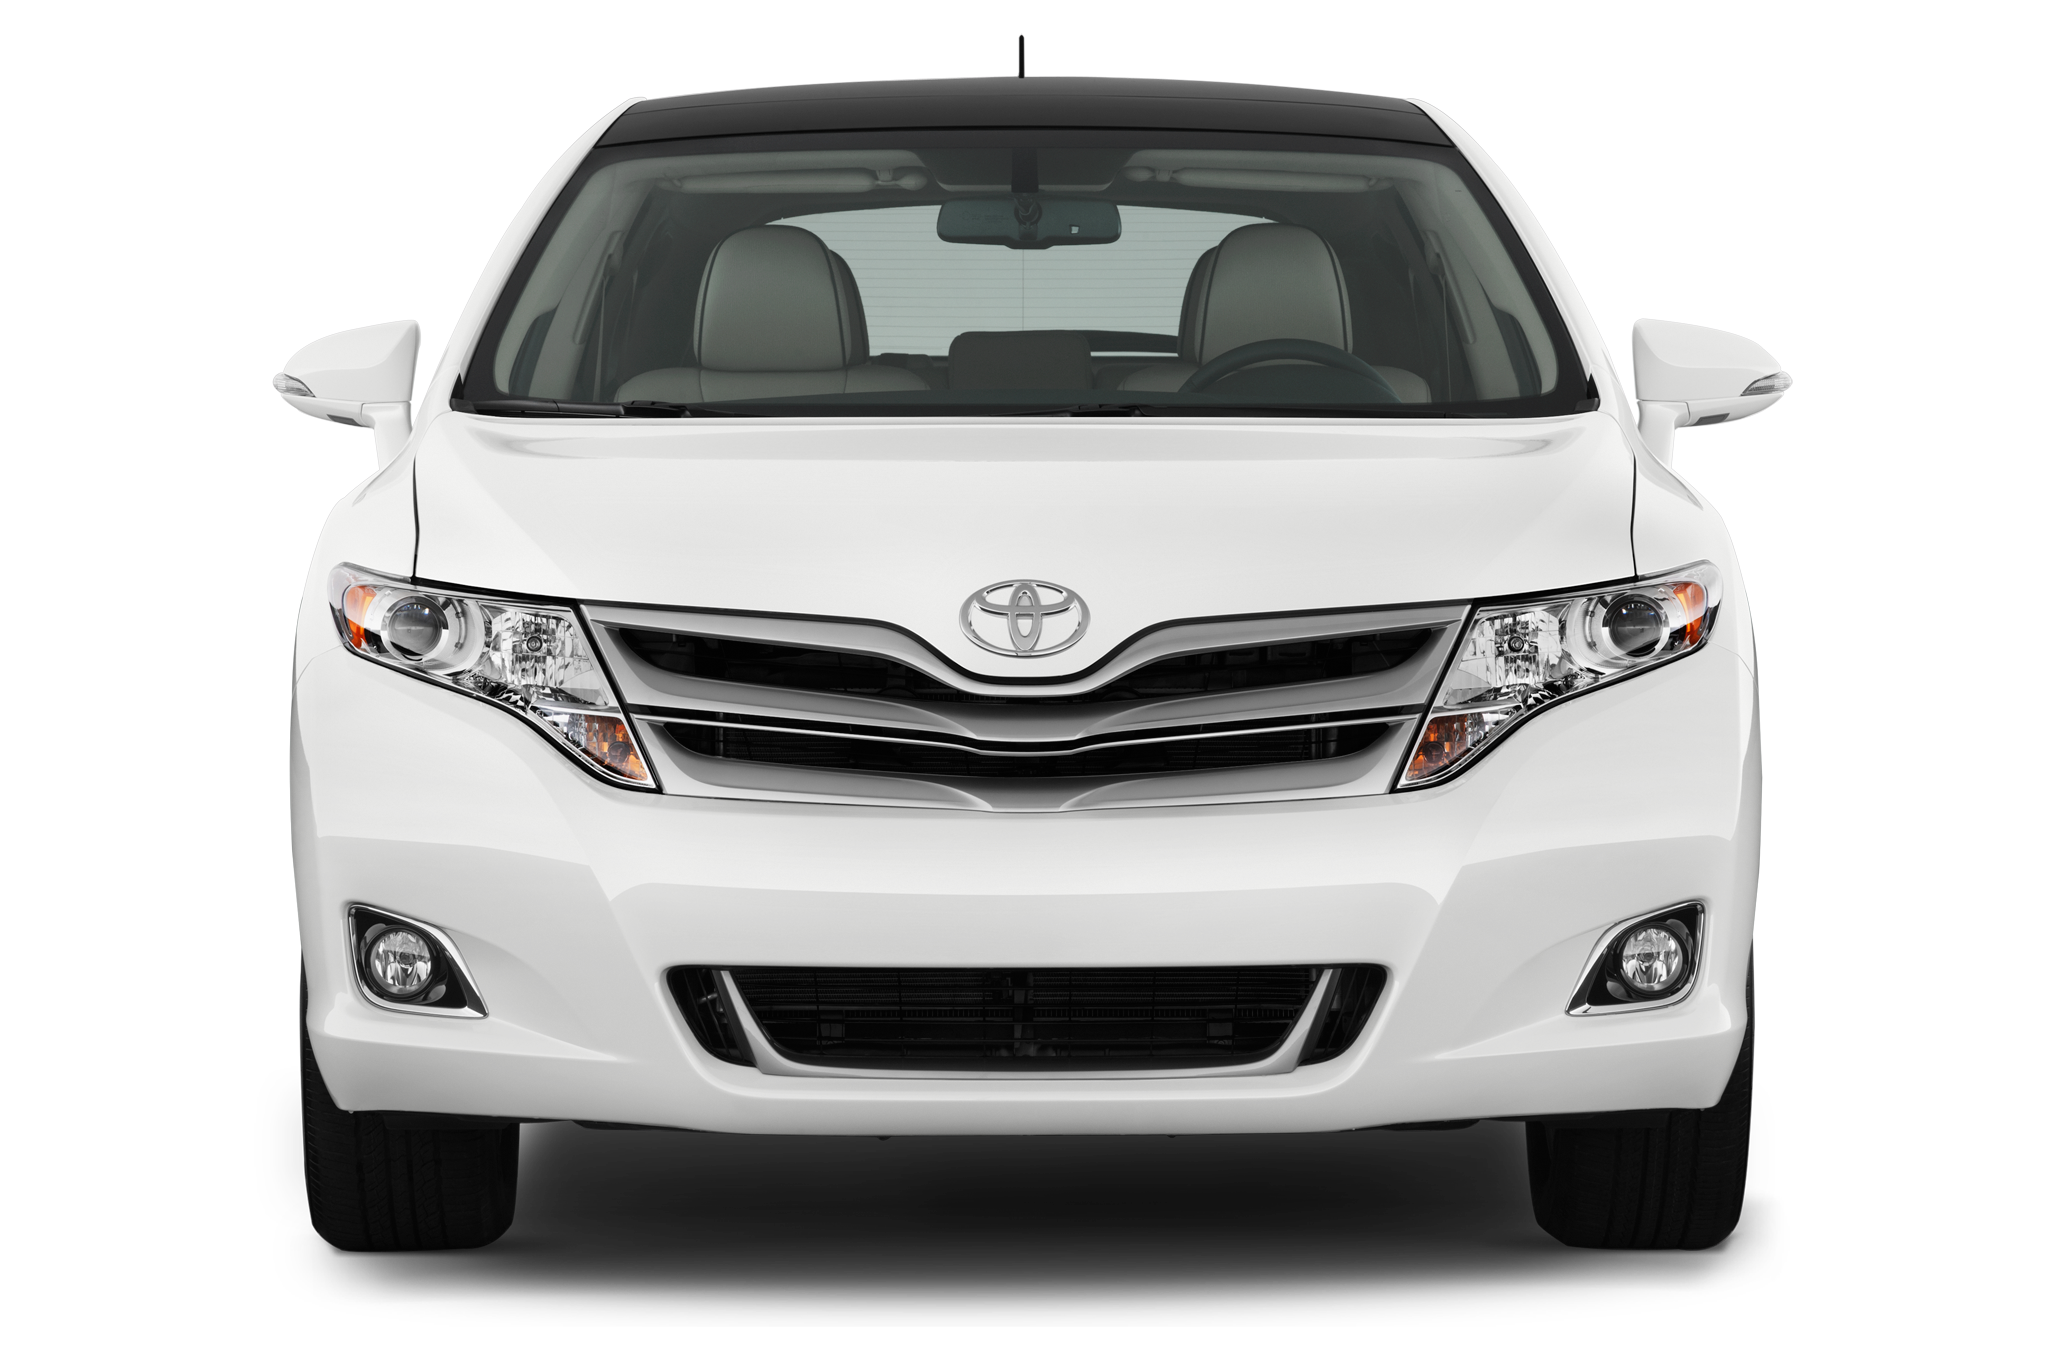 roomy review of hybrid all tag toyota gets reviews solid lovely car new performer venza